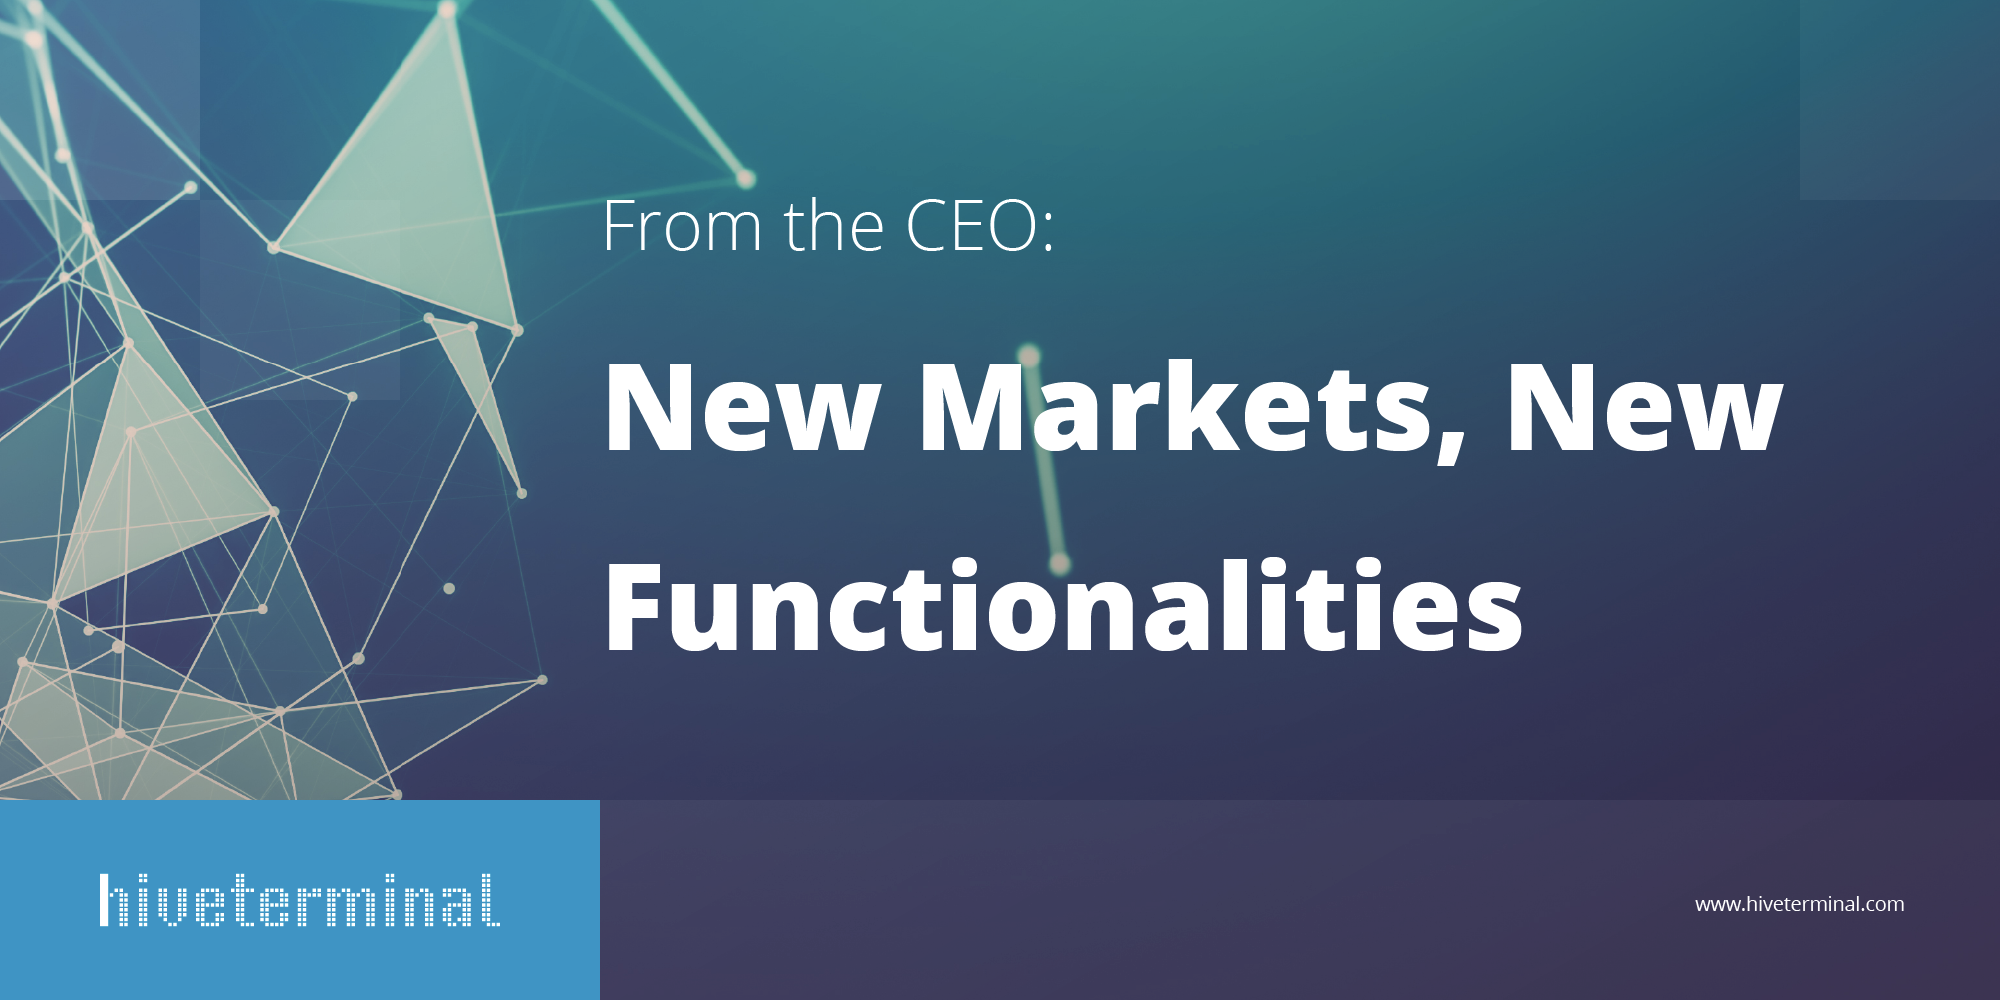 From the CEO: New Markets, New Functionalities